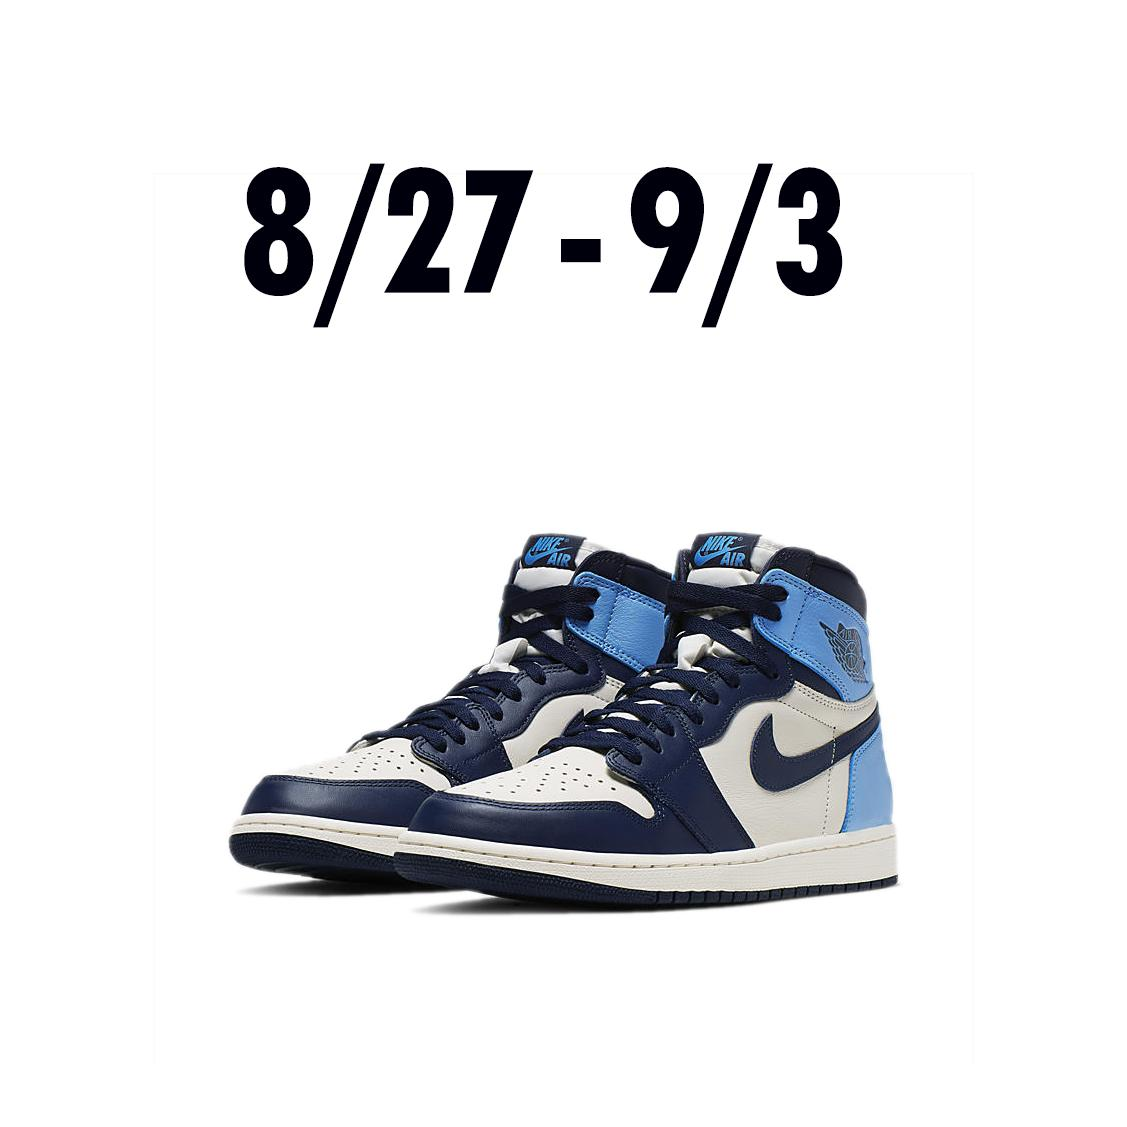 FULL WEEK PROXIES LIVE!!   $0.90 EACH  CODE: YEEZY  Will be active from Tuesday 8/27 at 3PM until Tuesday 9/3 at 2pm est  ASHBURN: https://t.co/GGwjrkzjhs CHICAGO: https://t.co/wpQQIWFRlU NY: https://t.co/xcLKM8yPcz LONDON: https://t.co/nWO7SLjhnd JAPAN: https://t.co/mMnqVZTjOp https://t.co/kGHXk4pcub